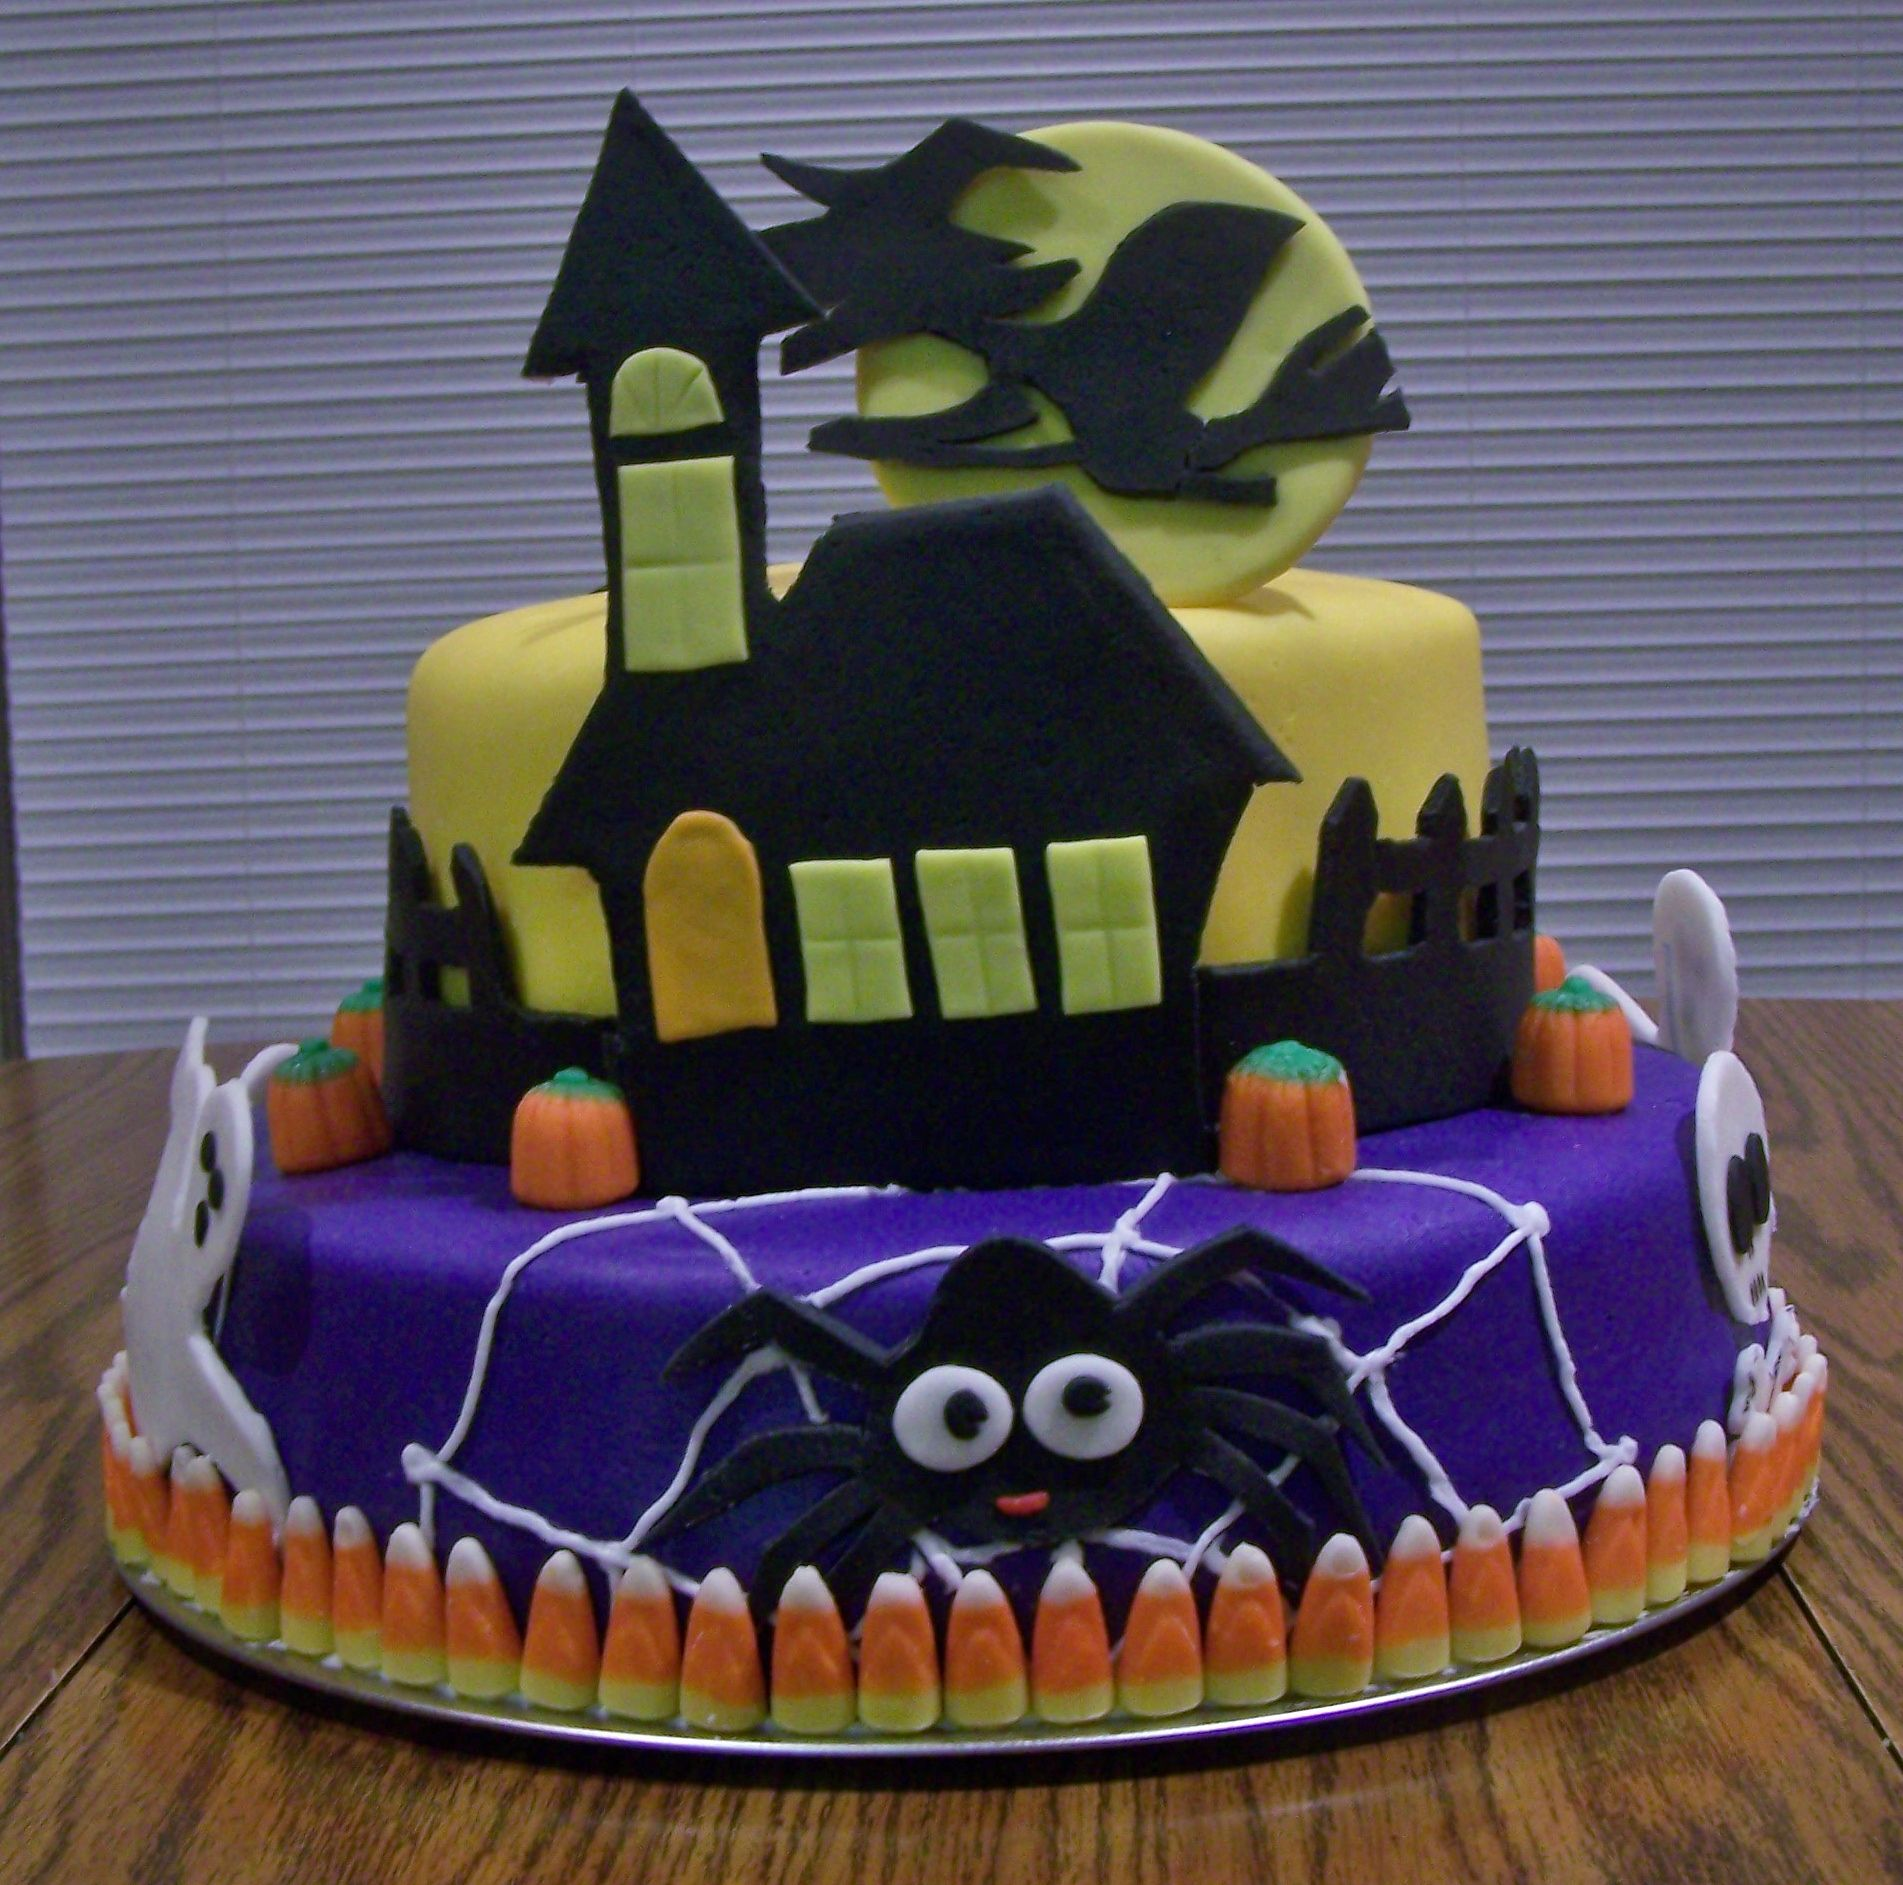 Halloween birthday cake  Cakes and cupcakes  Pinterest